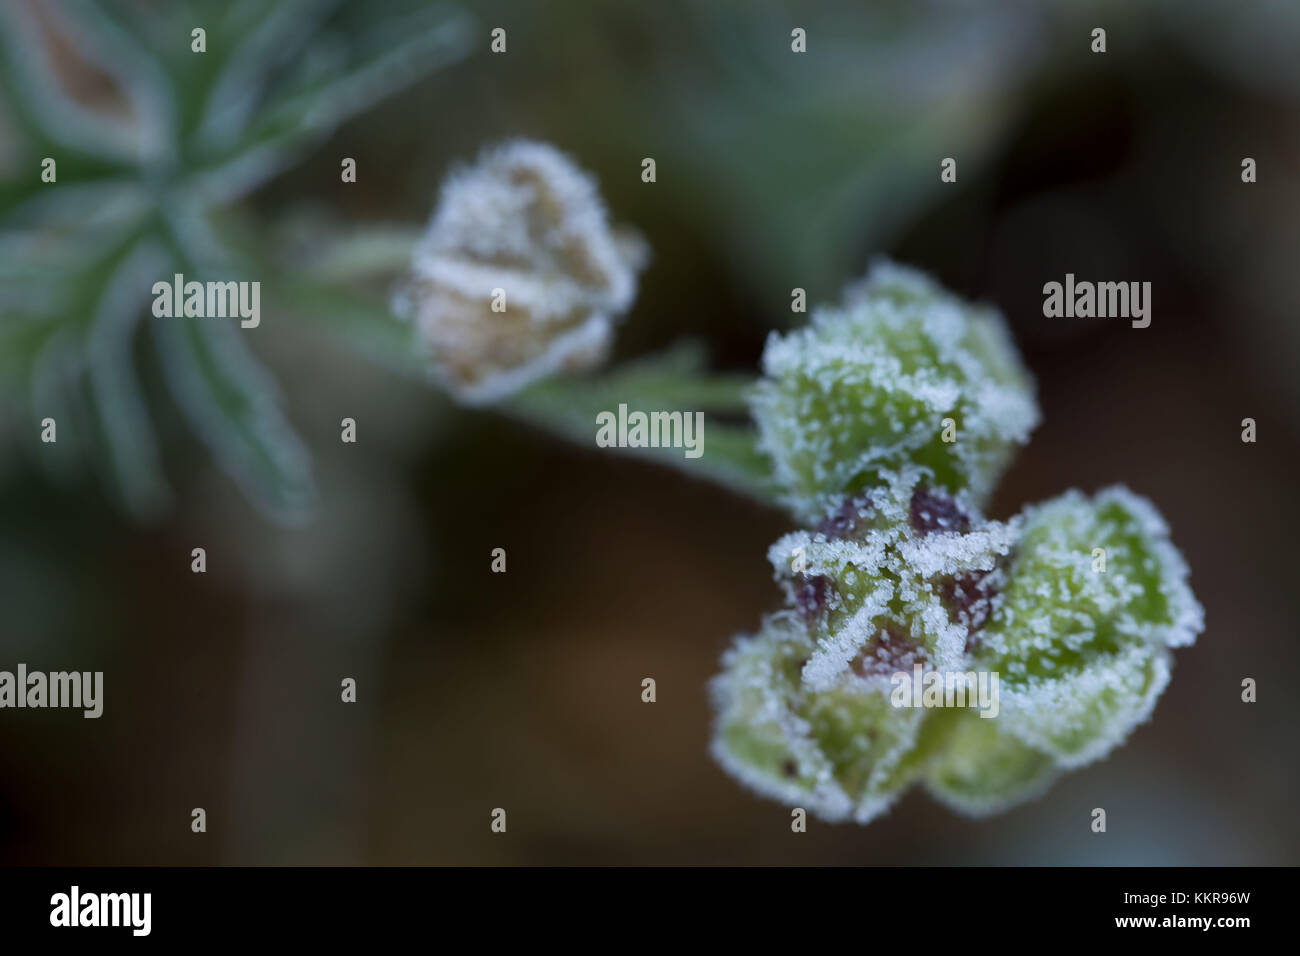 Hoarfrost crystals on dried flower seed pods, blur background - Stock Image